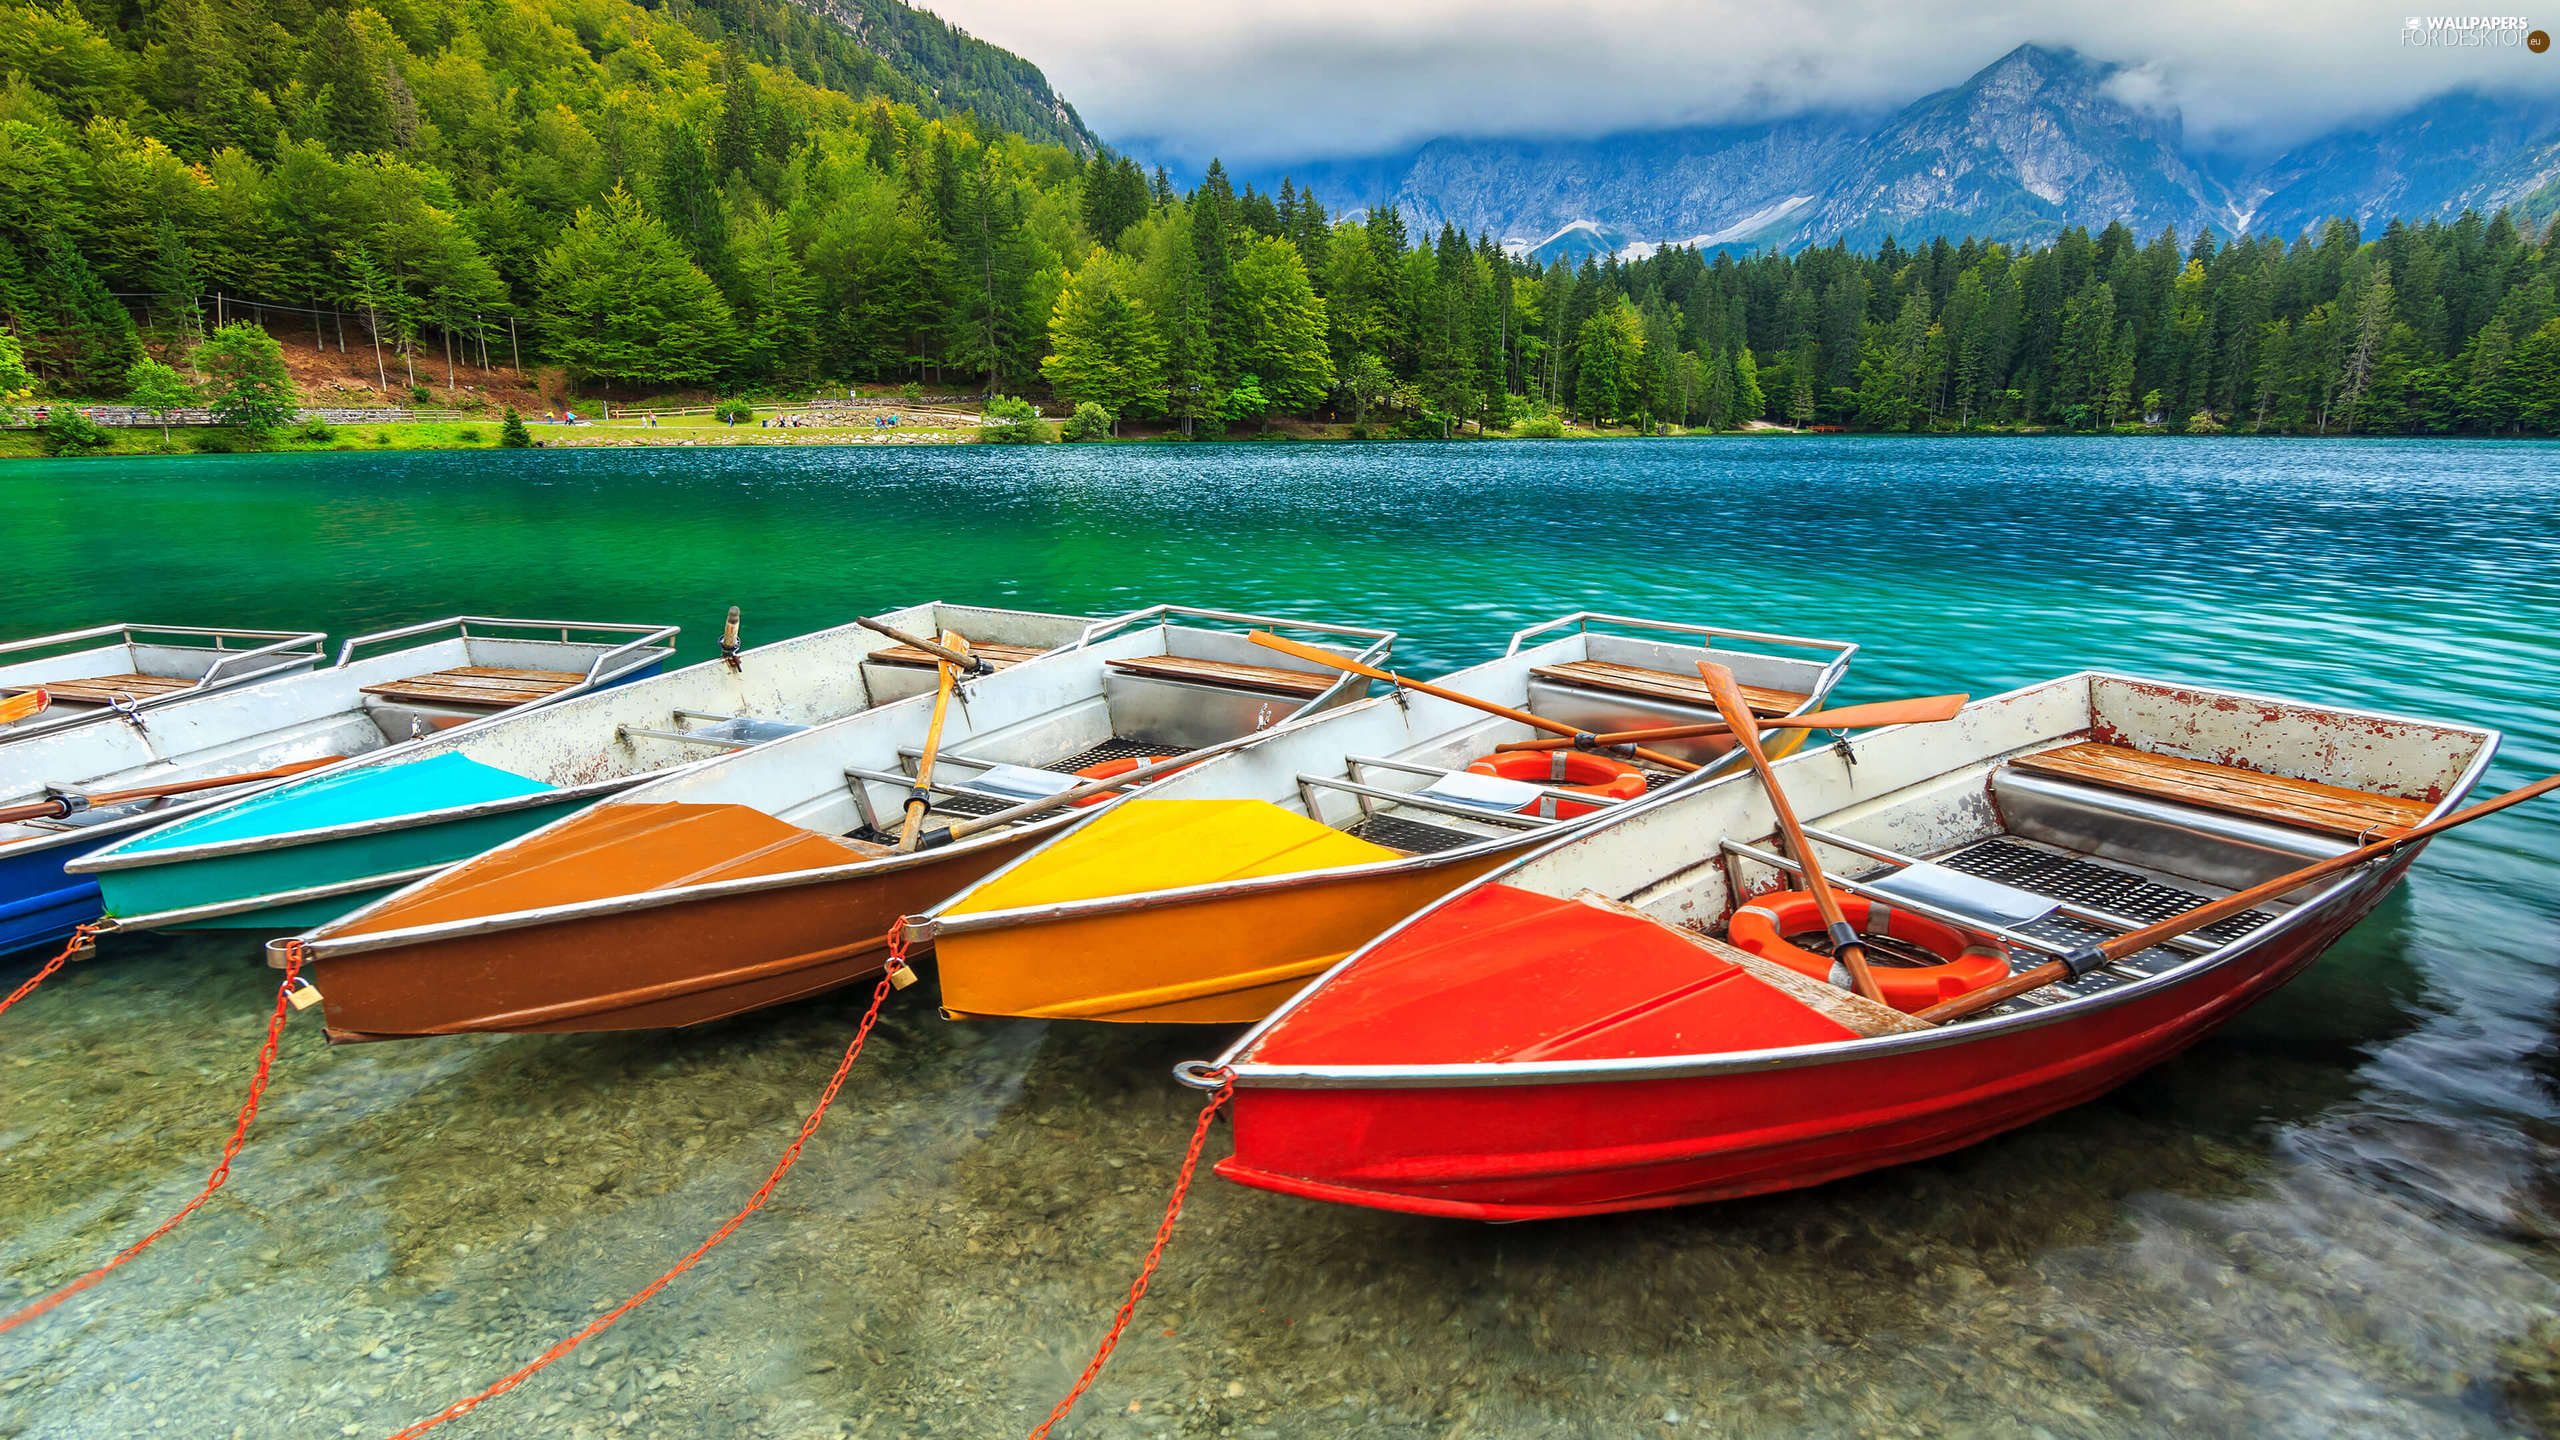 Alps, Fusine Lake, color, Mountains, Italy, woods, boats